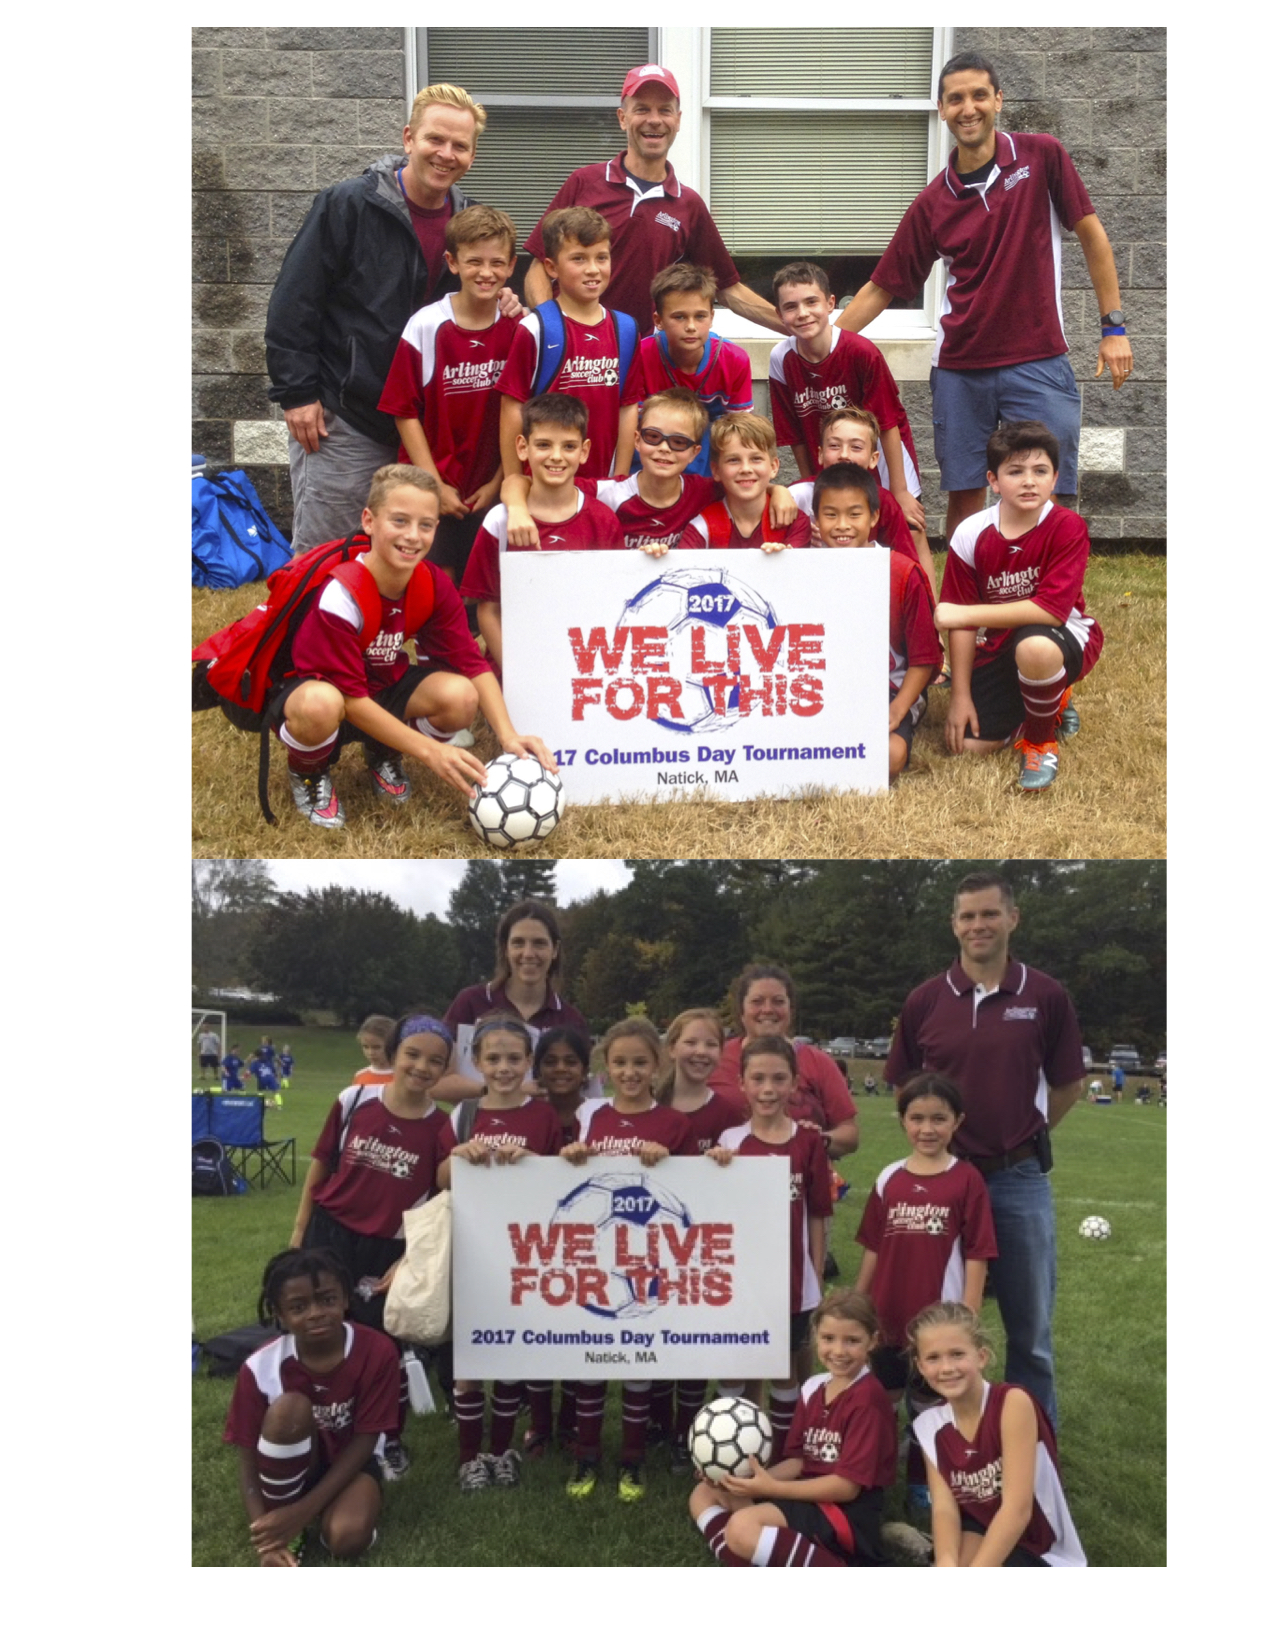 Arlington Honored with 2 Sportsmanship Awards at the Natick Tournament!